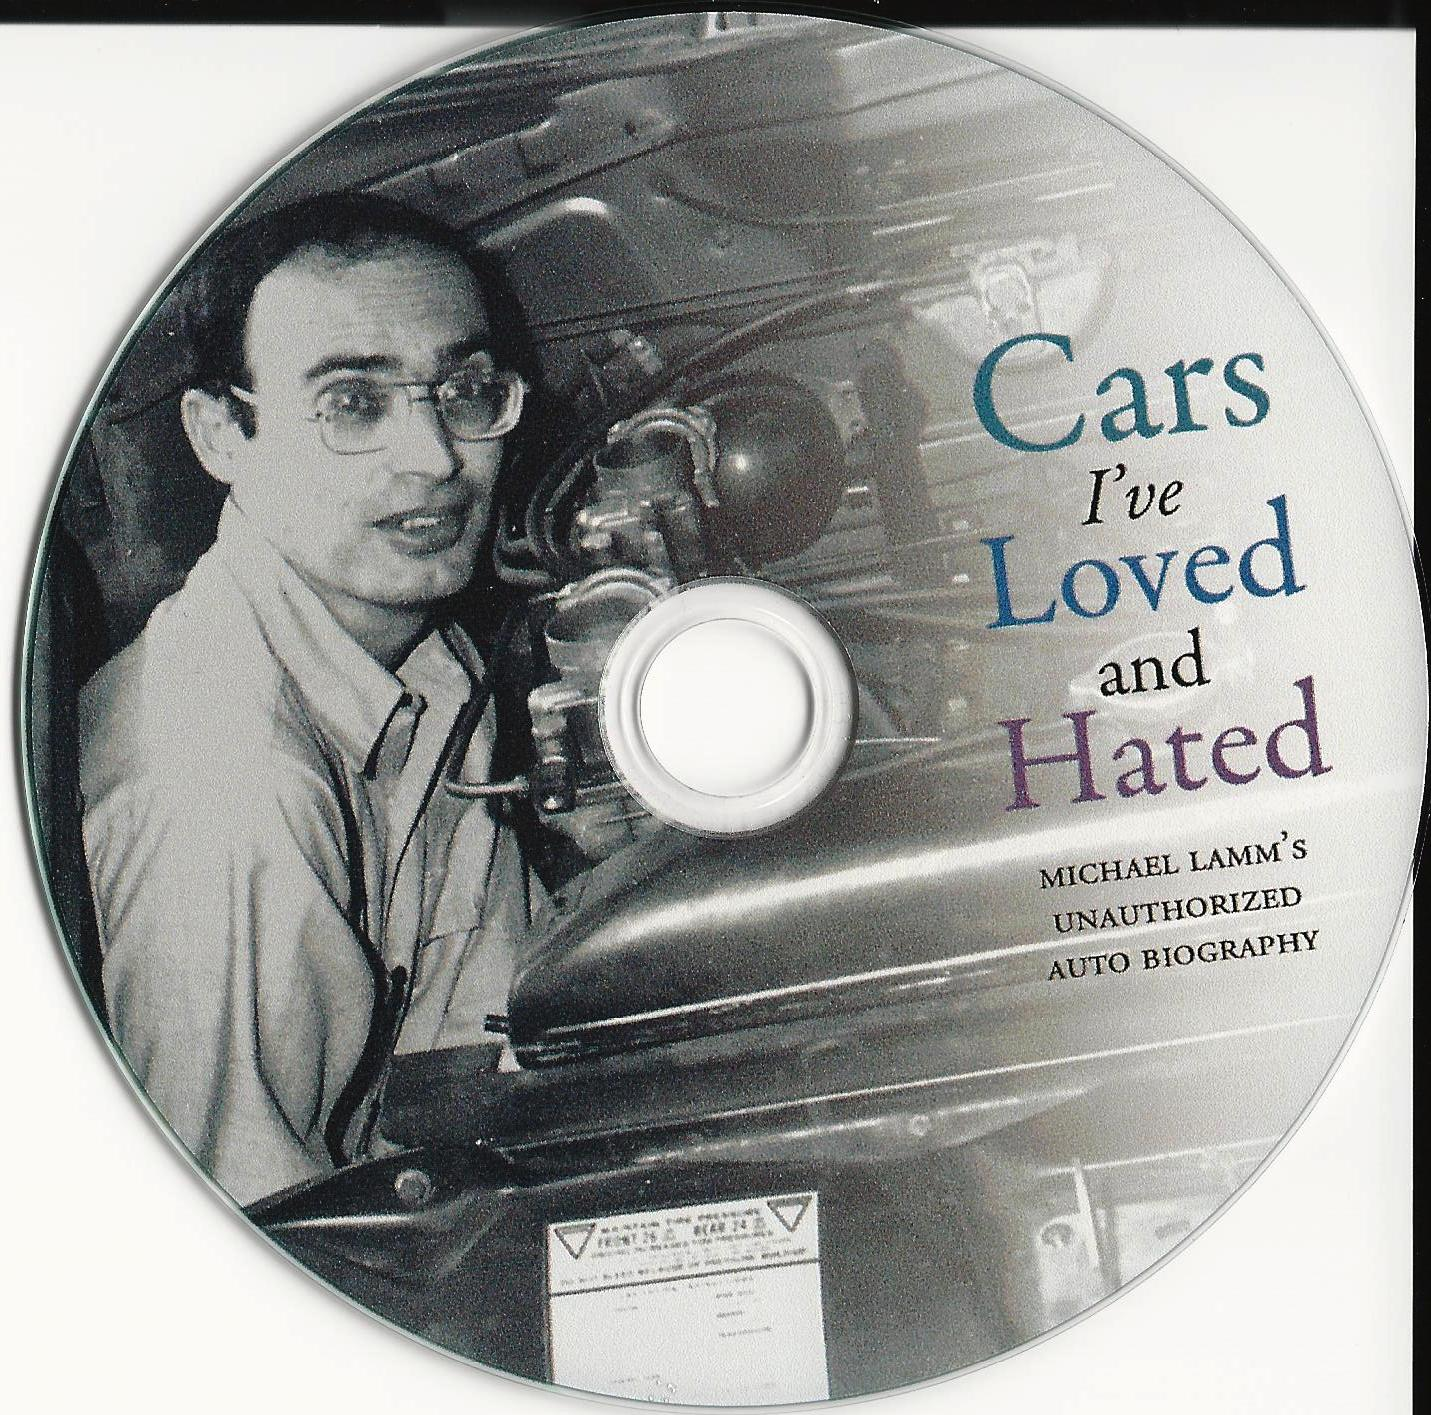 Cars I've Loved and Hated, a new blogbook by Michael Lamm